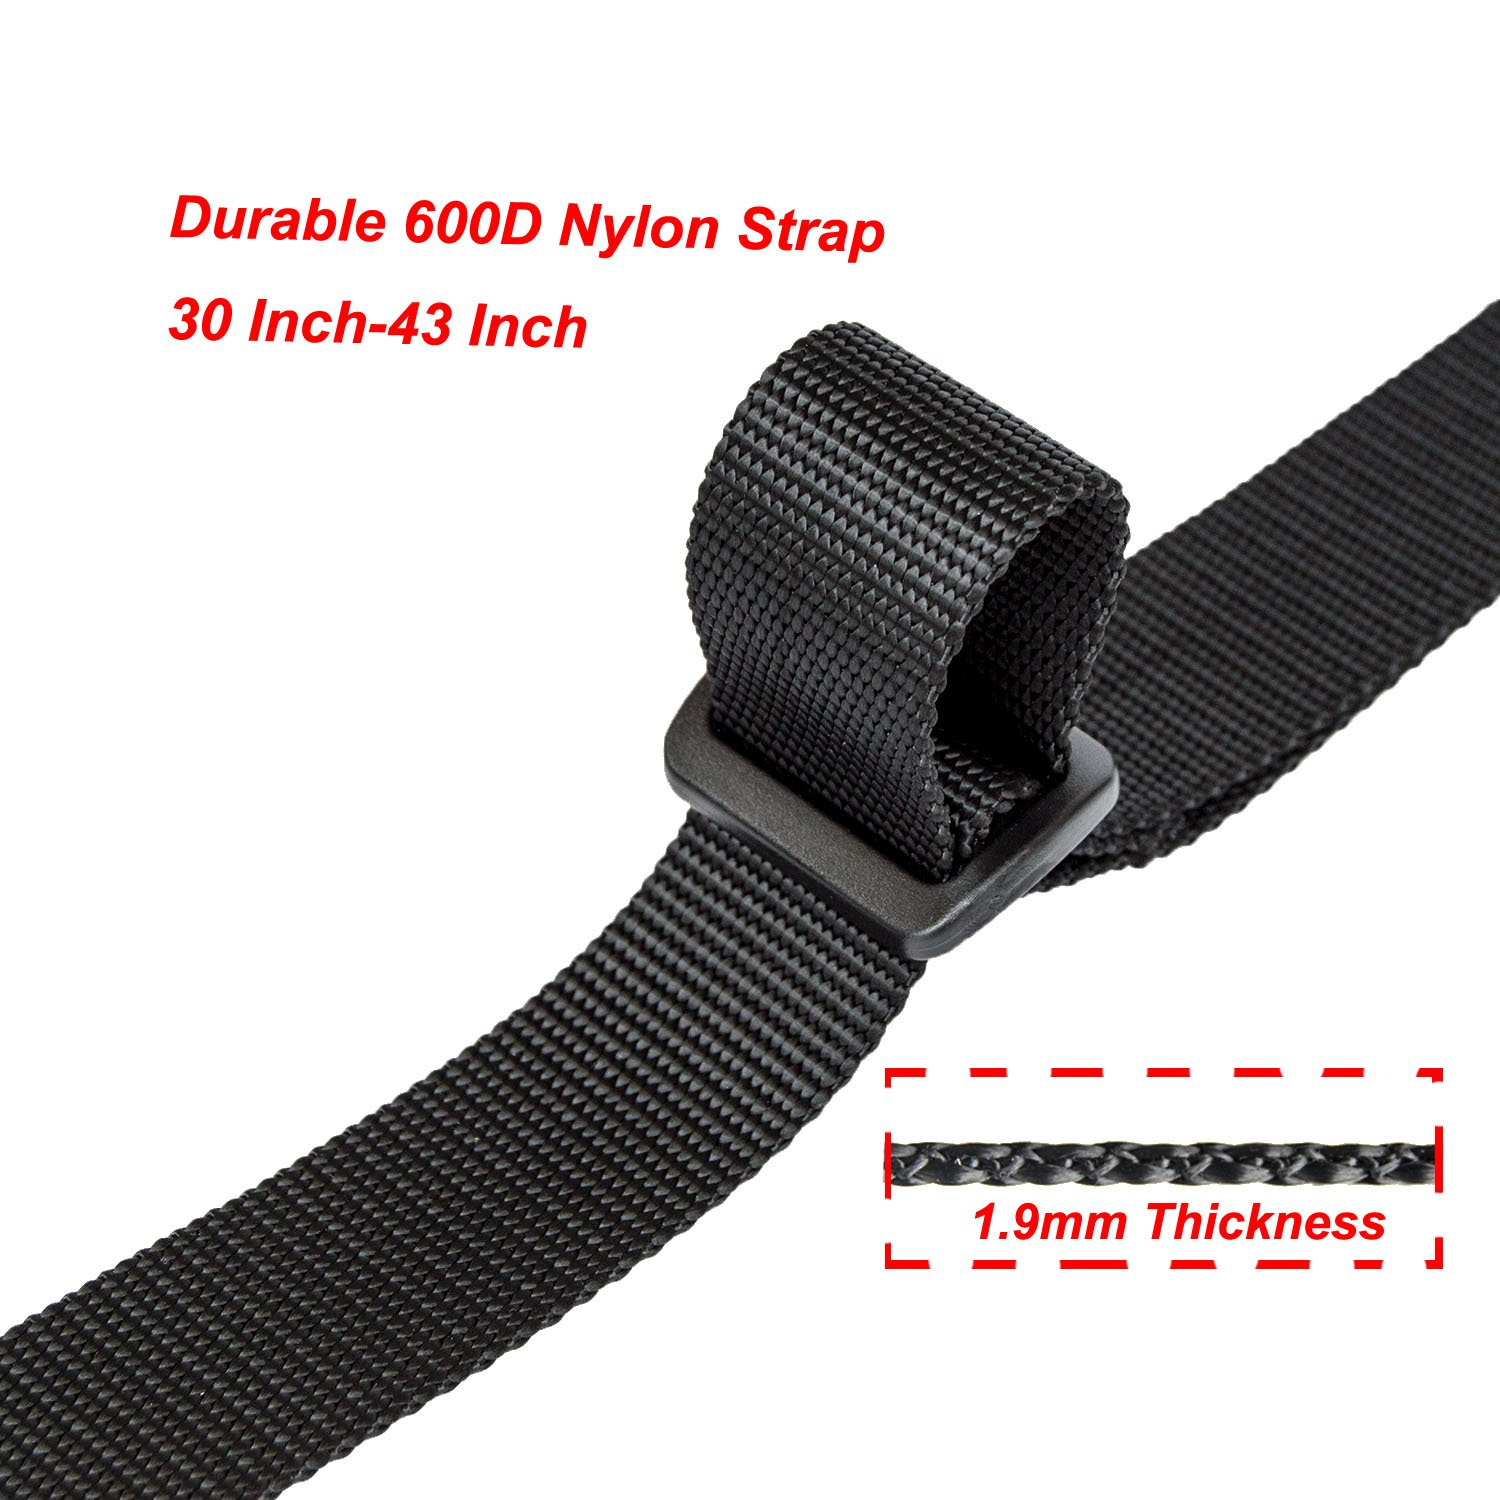 """Hongmei Outdoors 2 Point Rifle Sling with Shoulder Pad Adjustable Gun Strap with Release Buckle Rotation Clip 30""""- 43"""" by Hongmei Outdoors (Image #3)"""